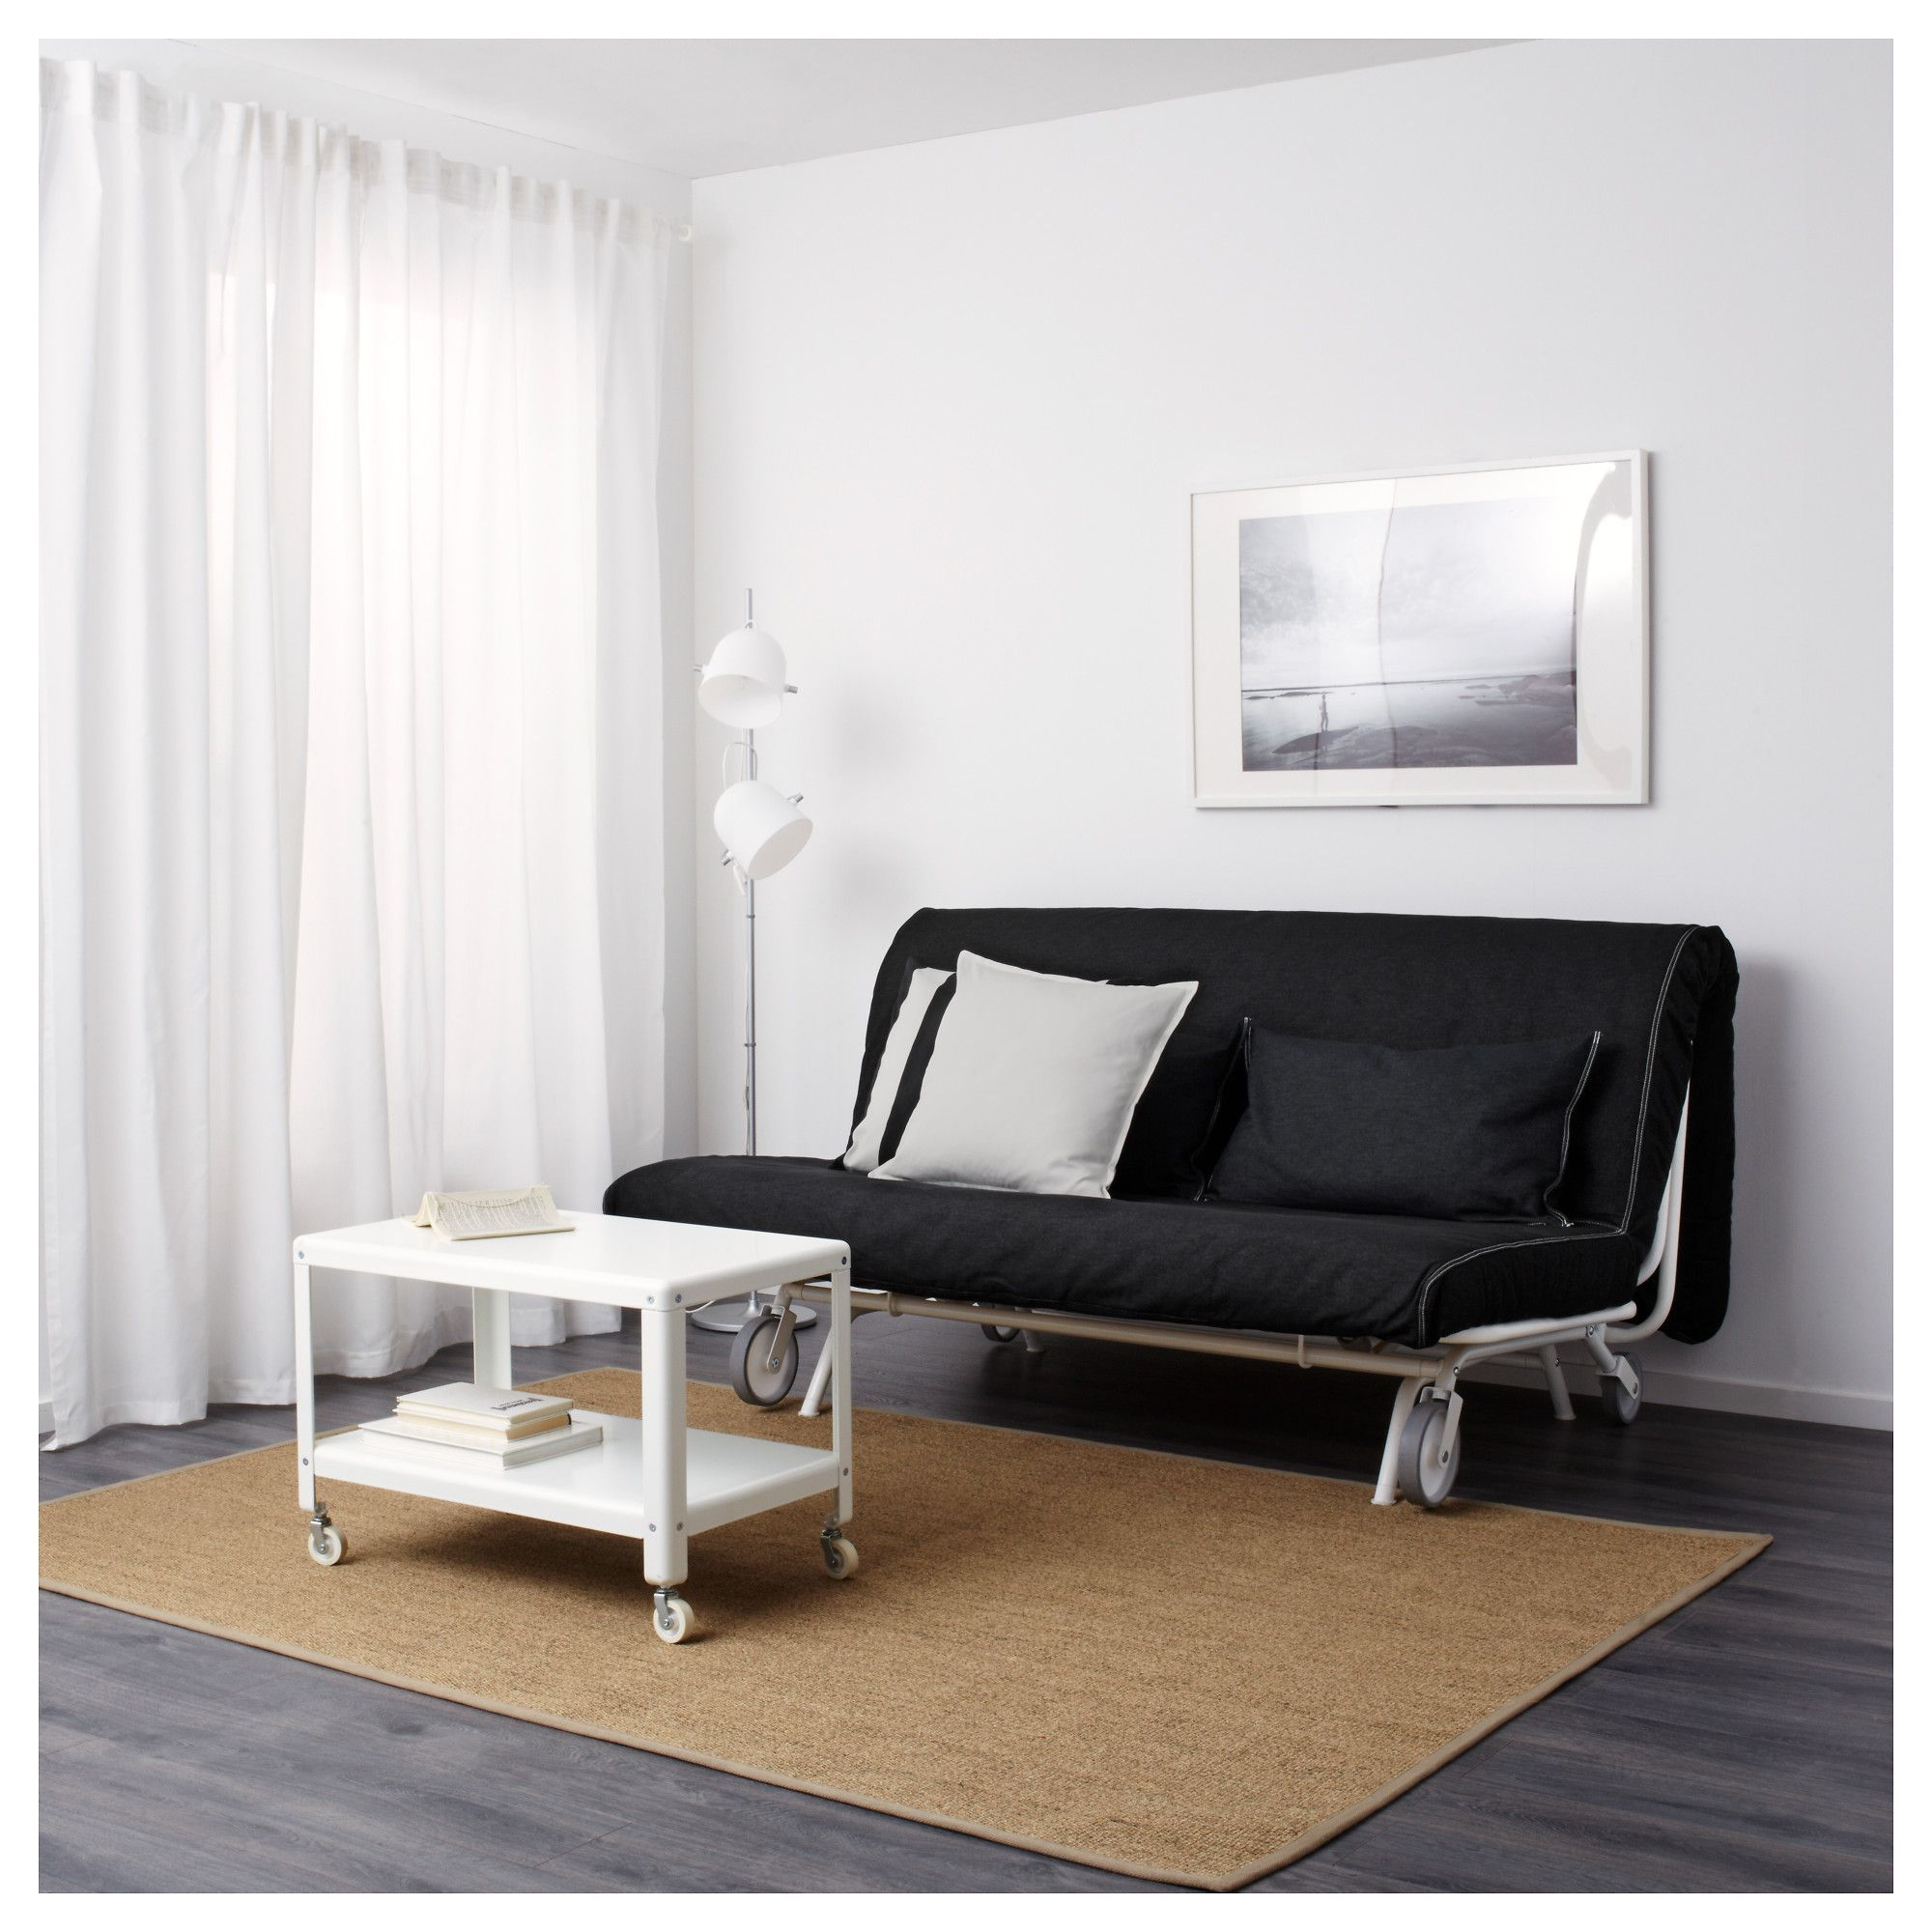 Ikea Ps Bettsofa Matratze Ikea Ps Murbo Sleeper Sofa Decorating Ideas Bedroom In 2018